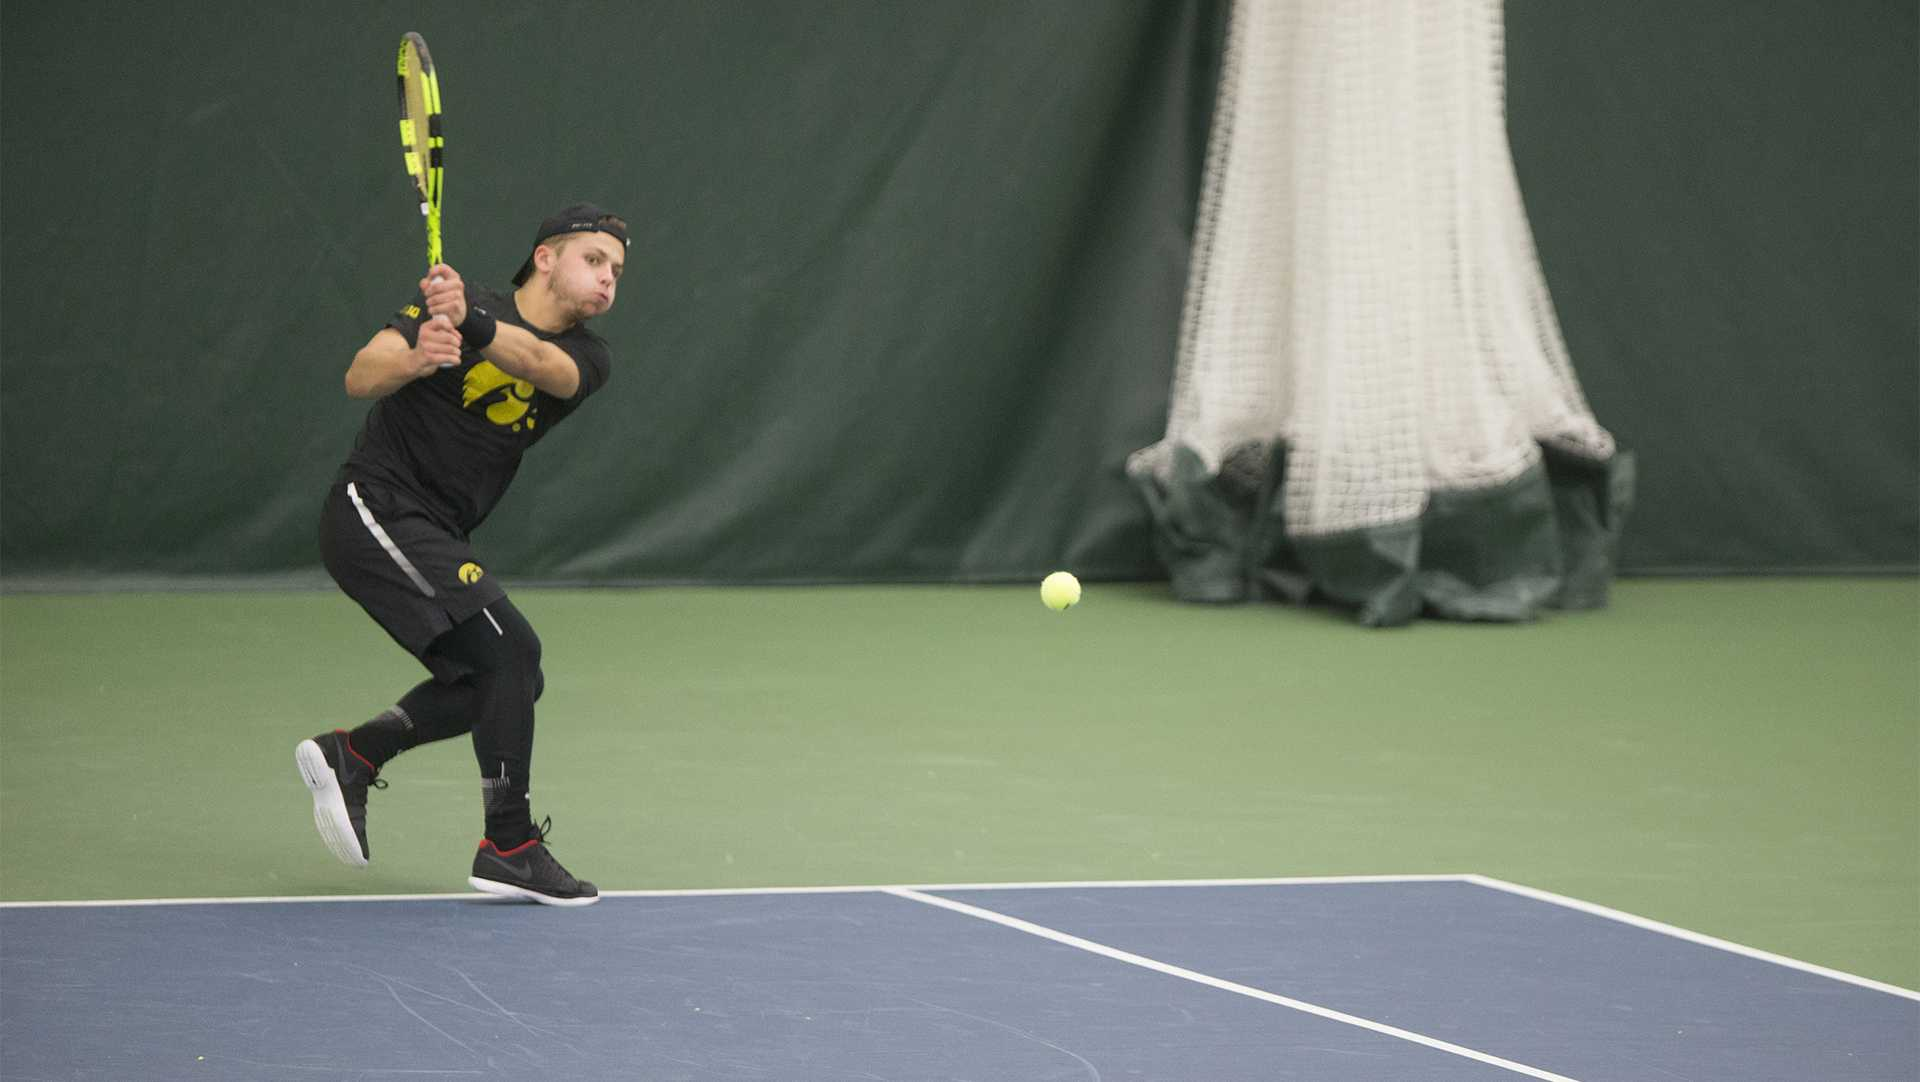 Iowa's Will Davies wails a backhand during a tennis match between Iowa and Western Michigan in Iowa City on Friday, Jan. 19, 2018. The Hawkeyes earned the doubles point but lost the match overall, 5-2. (Shivansh Ahuja/The Daily Iowan)